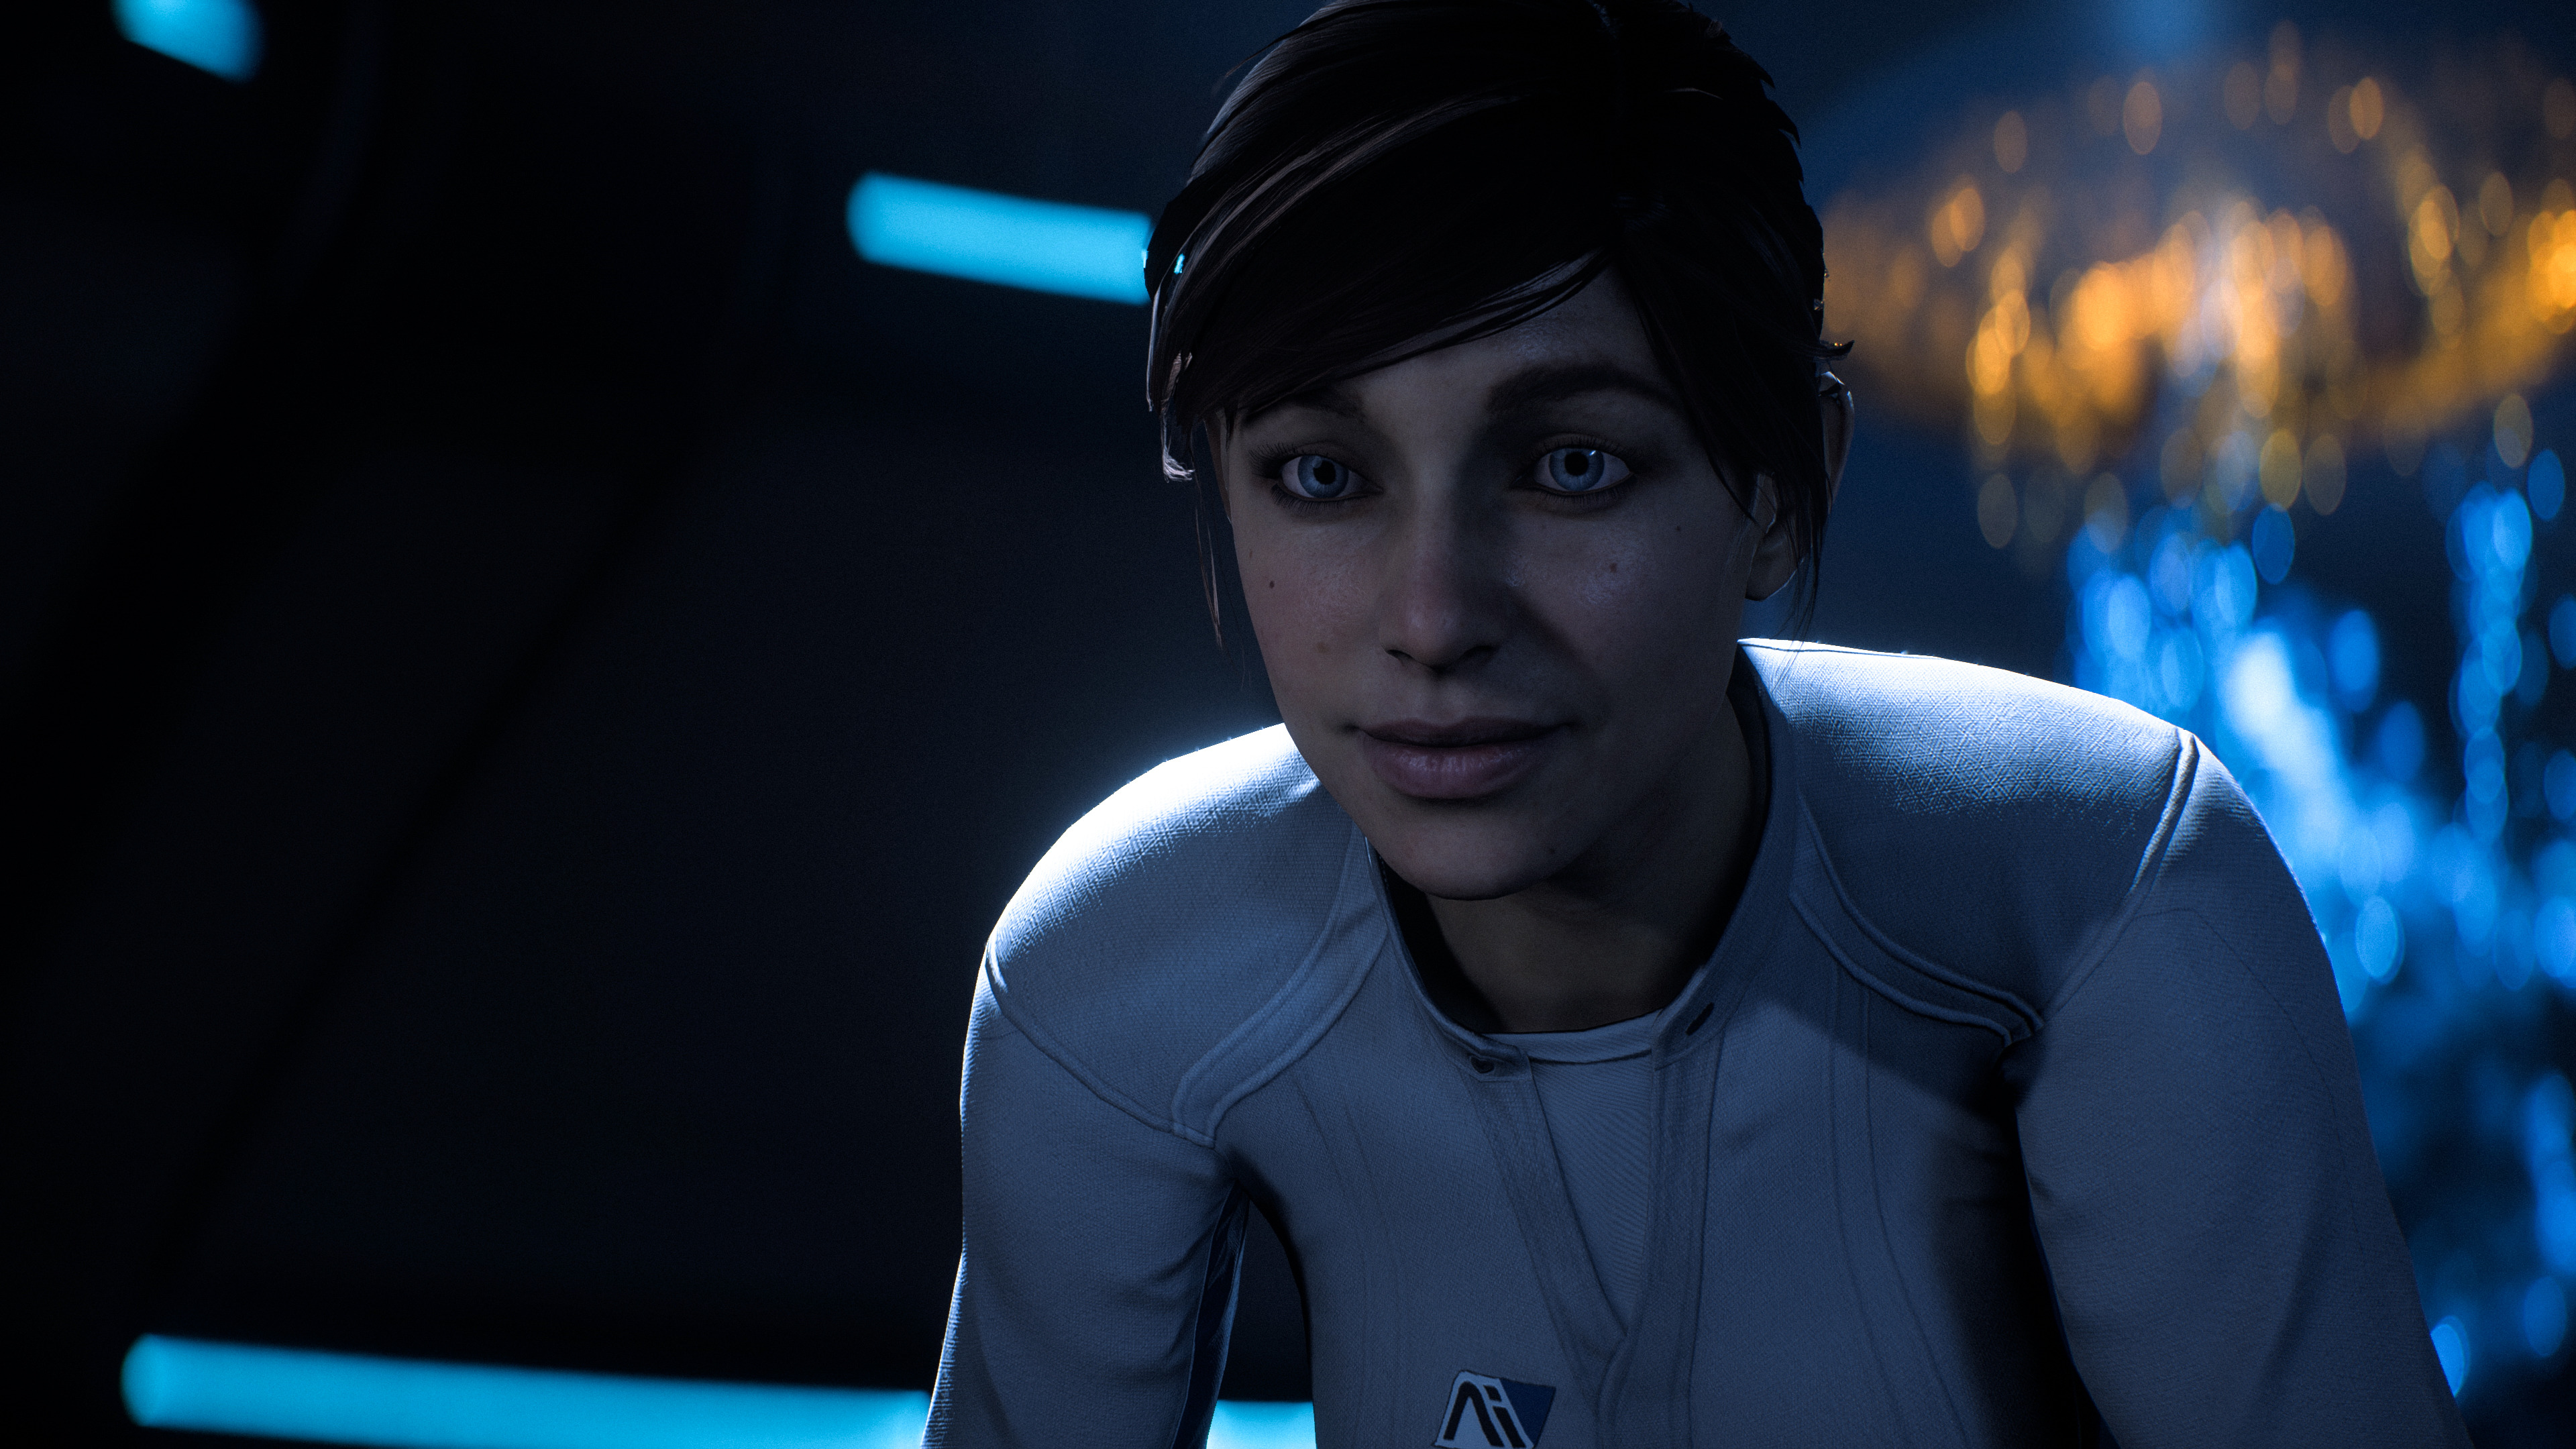 Former Mass Effect animator speaks out on Mass Effect: Andromeda's visuals